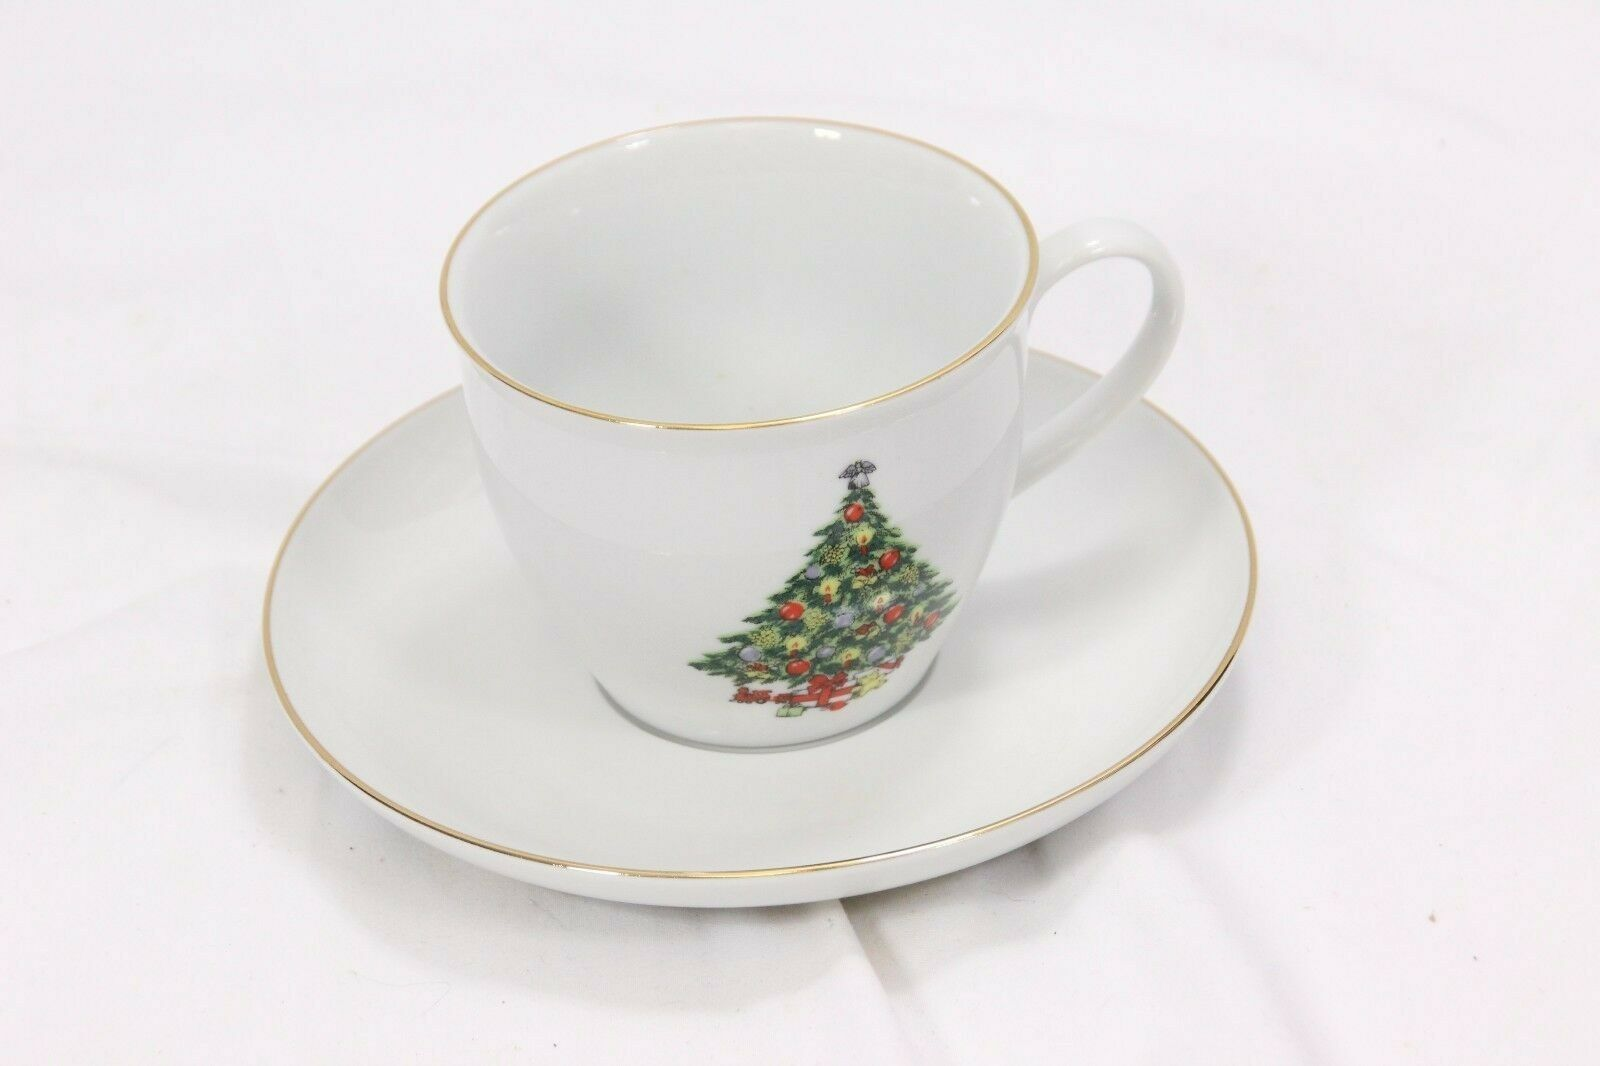 Jamestown Xmas Treasure Bowls Cups Saucers Lot of 12 image 3